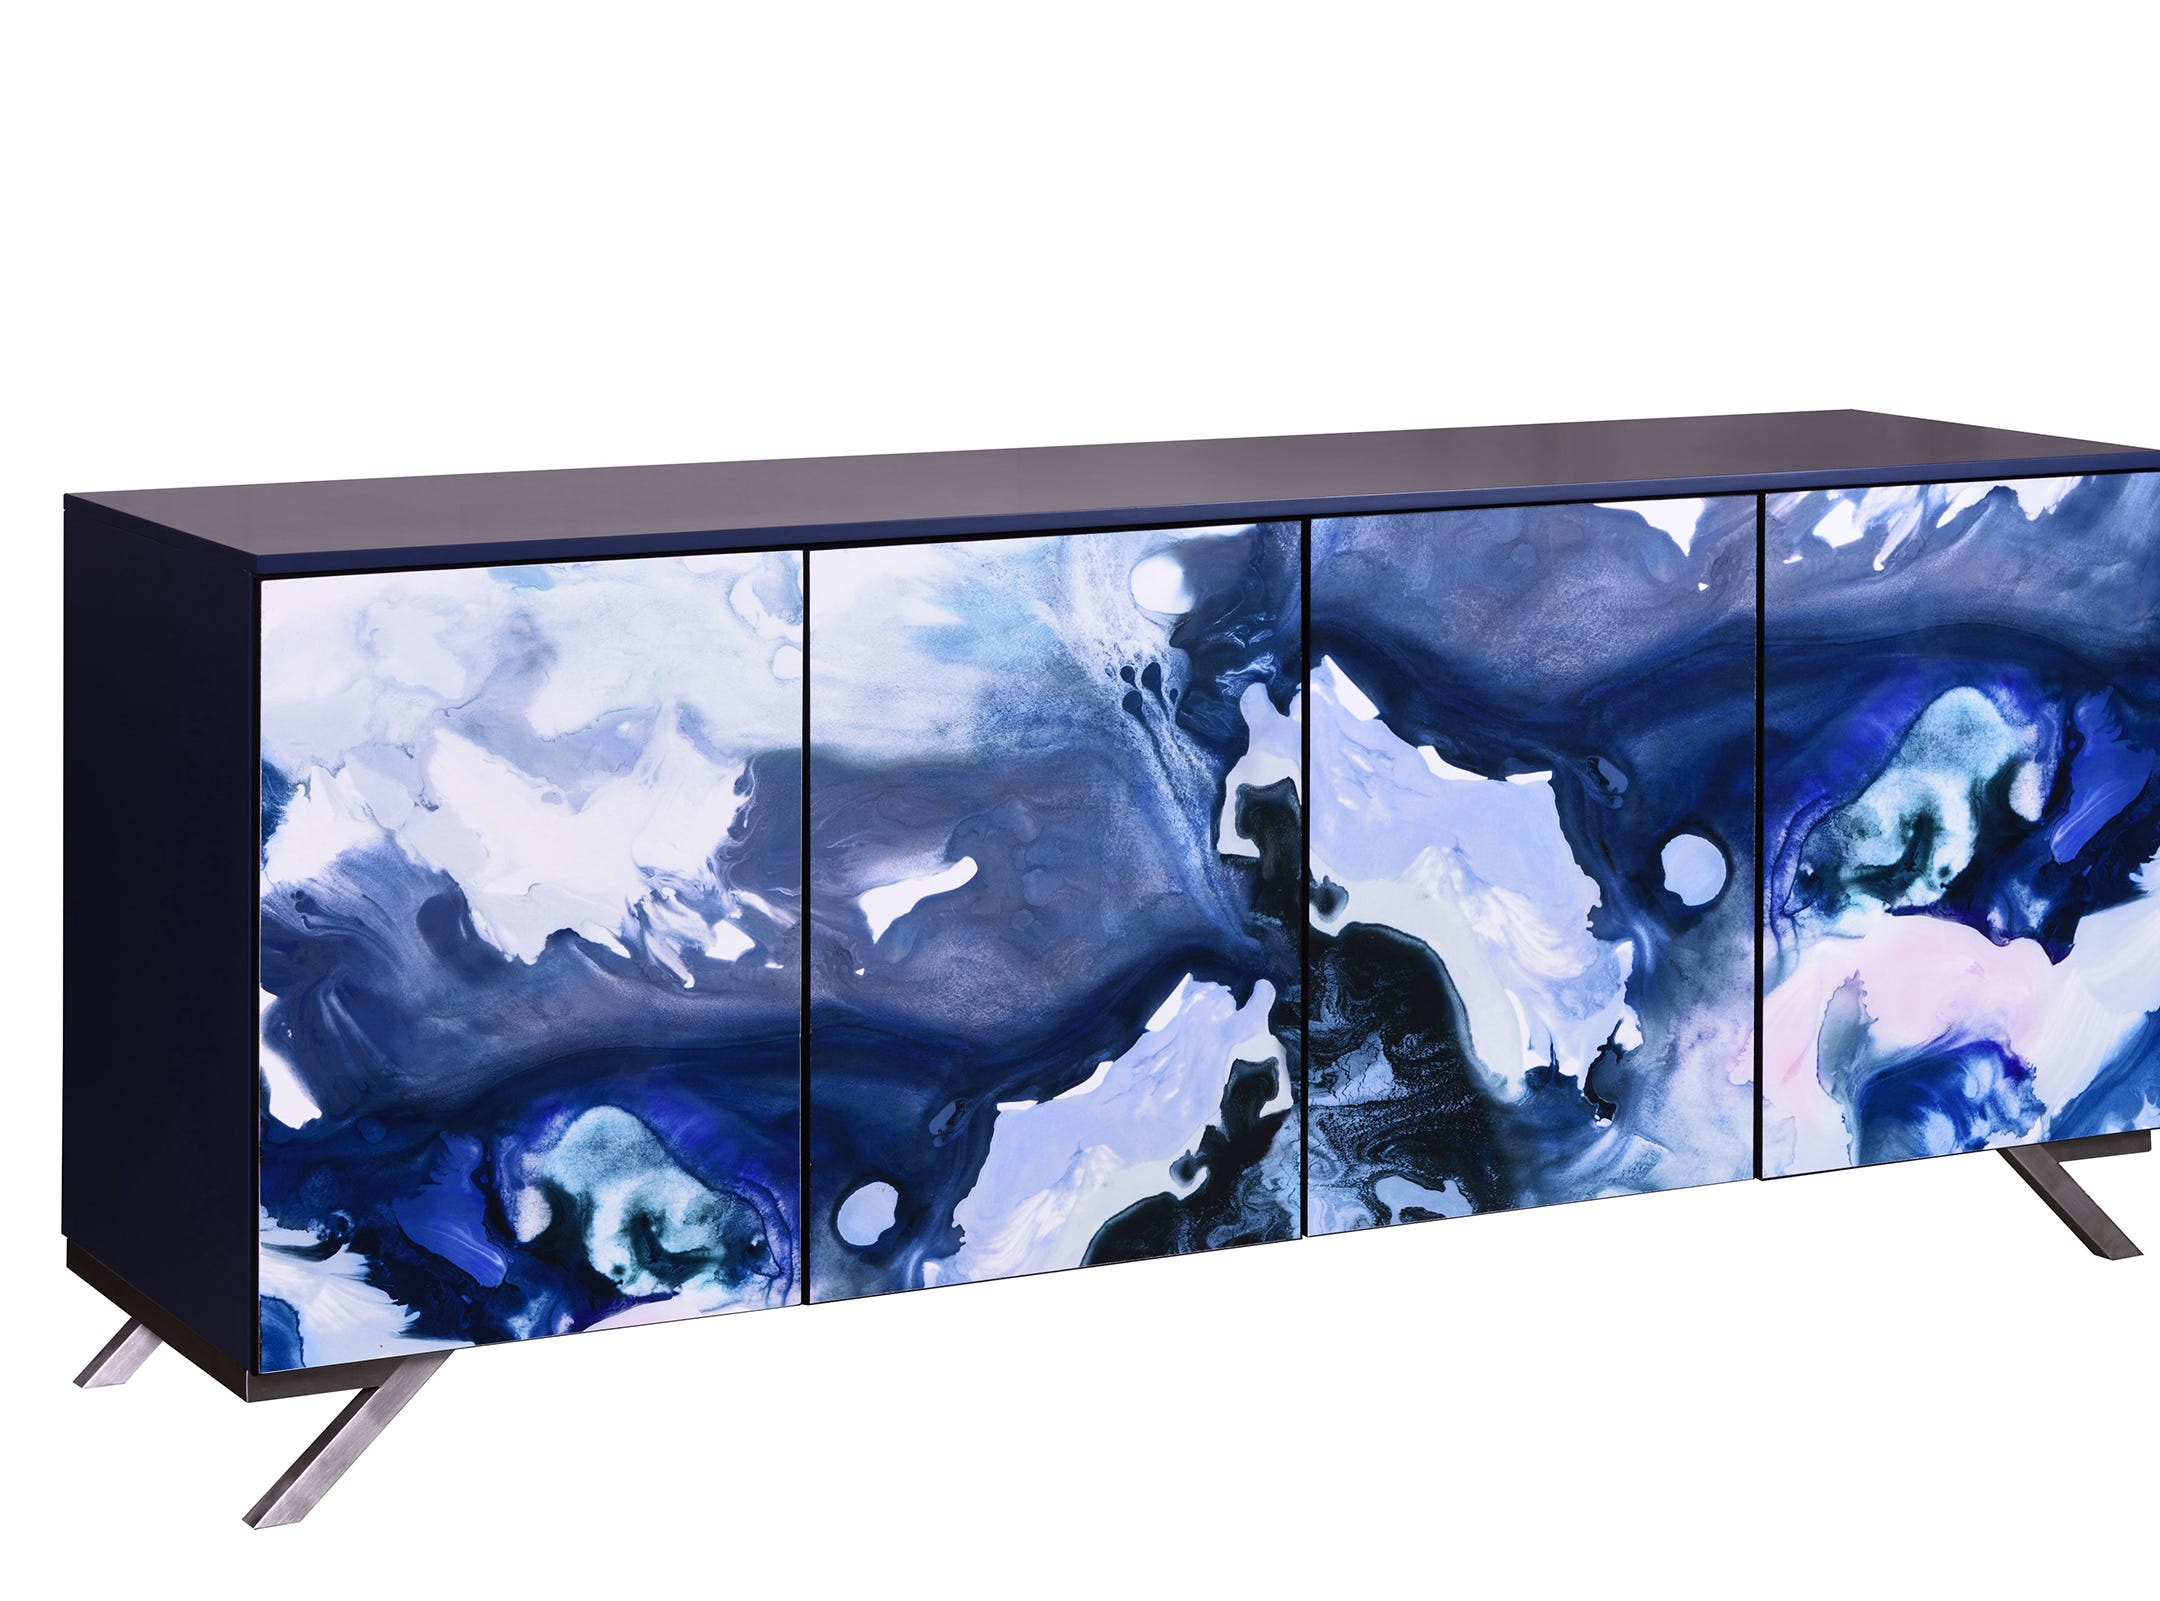 The Lake Shore Watercolor Console from John Strauss Furniture is a piece of art -- a watercolor by Tracy Hiner from Black Crow Studio splashes across the doors. The art was digitally printed, then applied like a veneer to the door panels. Then Strauss put on an acrylic coating in a low sheen for protection. The 84-inch-long, 20-inch-wide, 36-inch-tall case is lacquered with a durable paint in a satin sheen navy; Stainless steel legs in the shape of the numeral 7 are part of a frame that wraps around the back. Touch latch doors open to adjustable shelves.